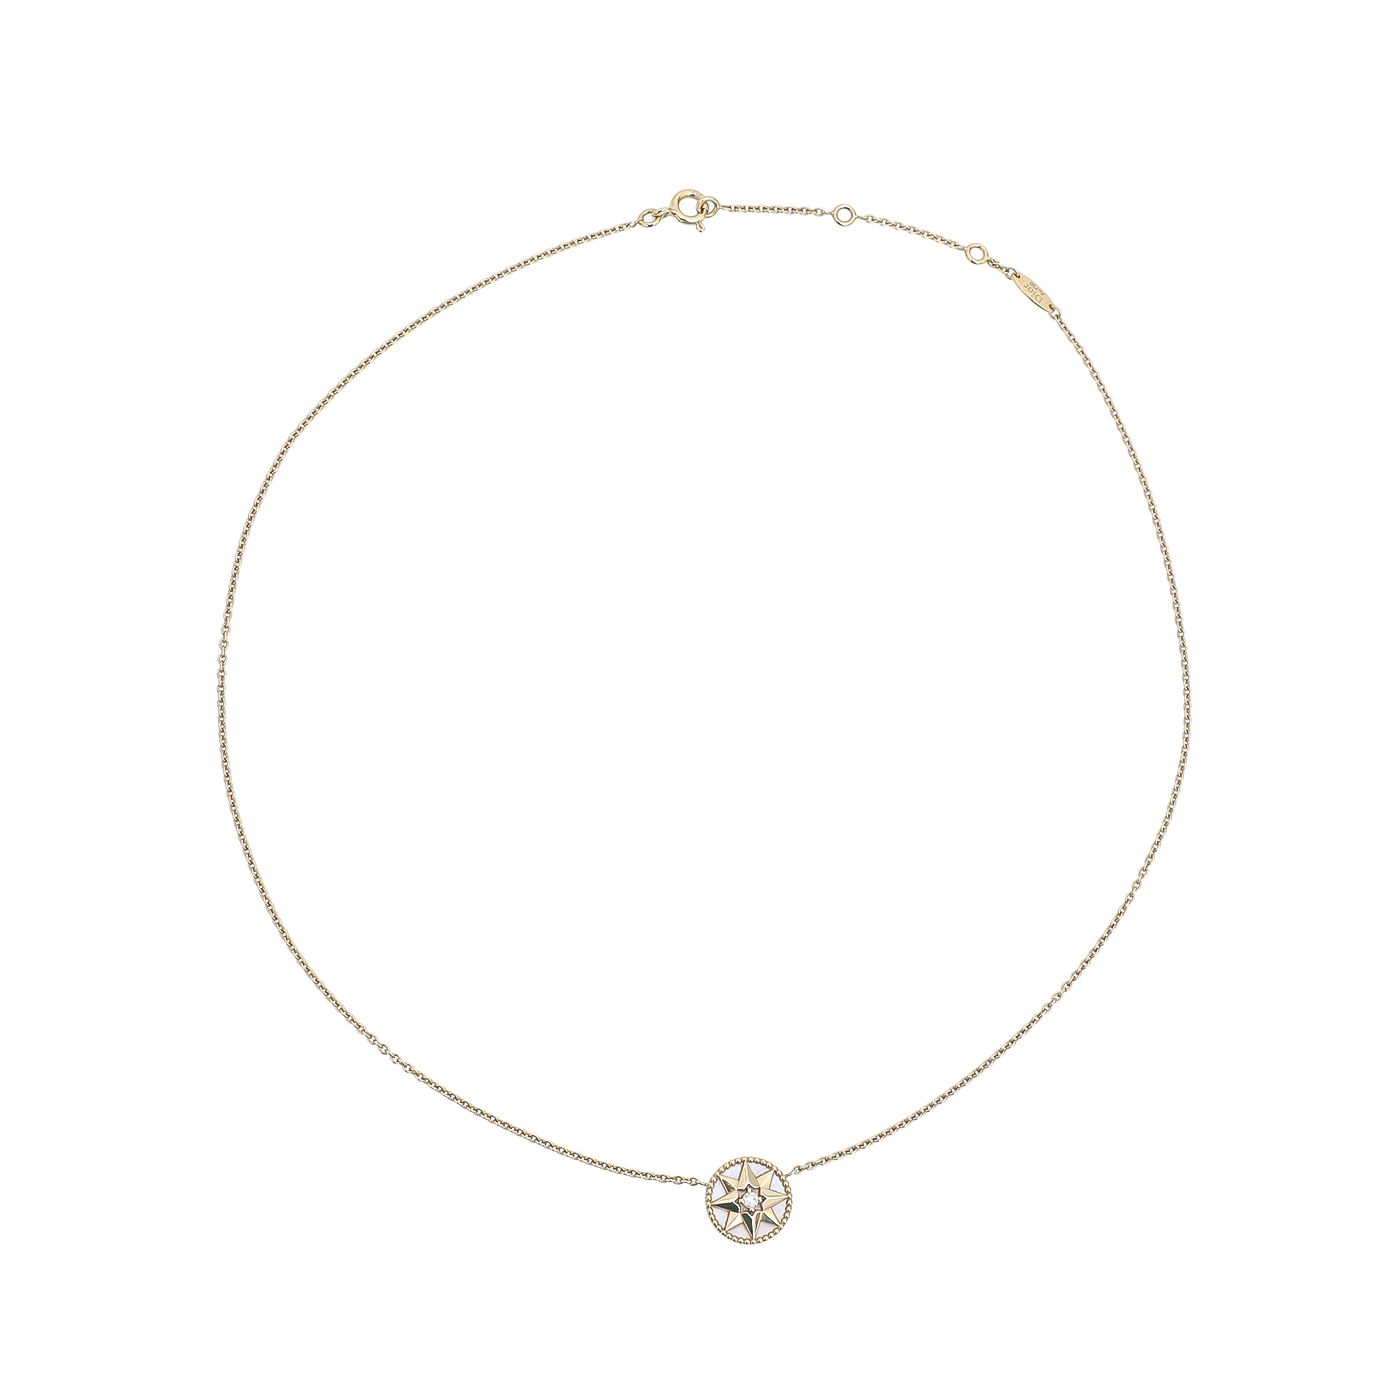 Christian Dior 18K Yellow Gold W/ Diamond Rose Des Vents Necklace